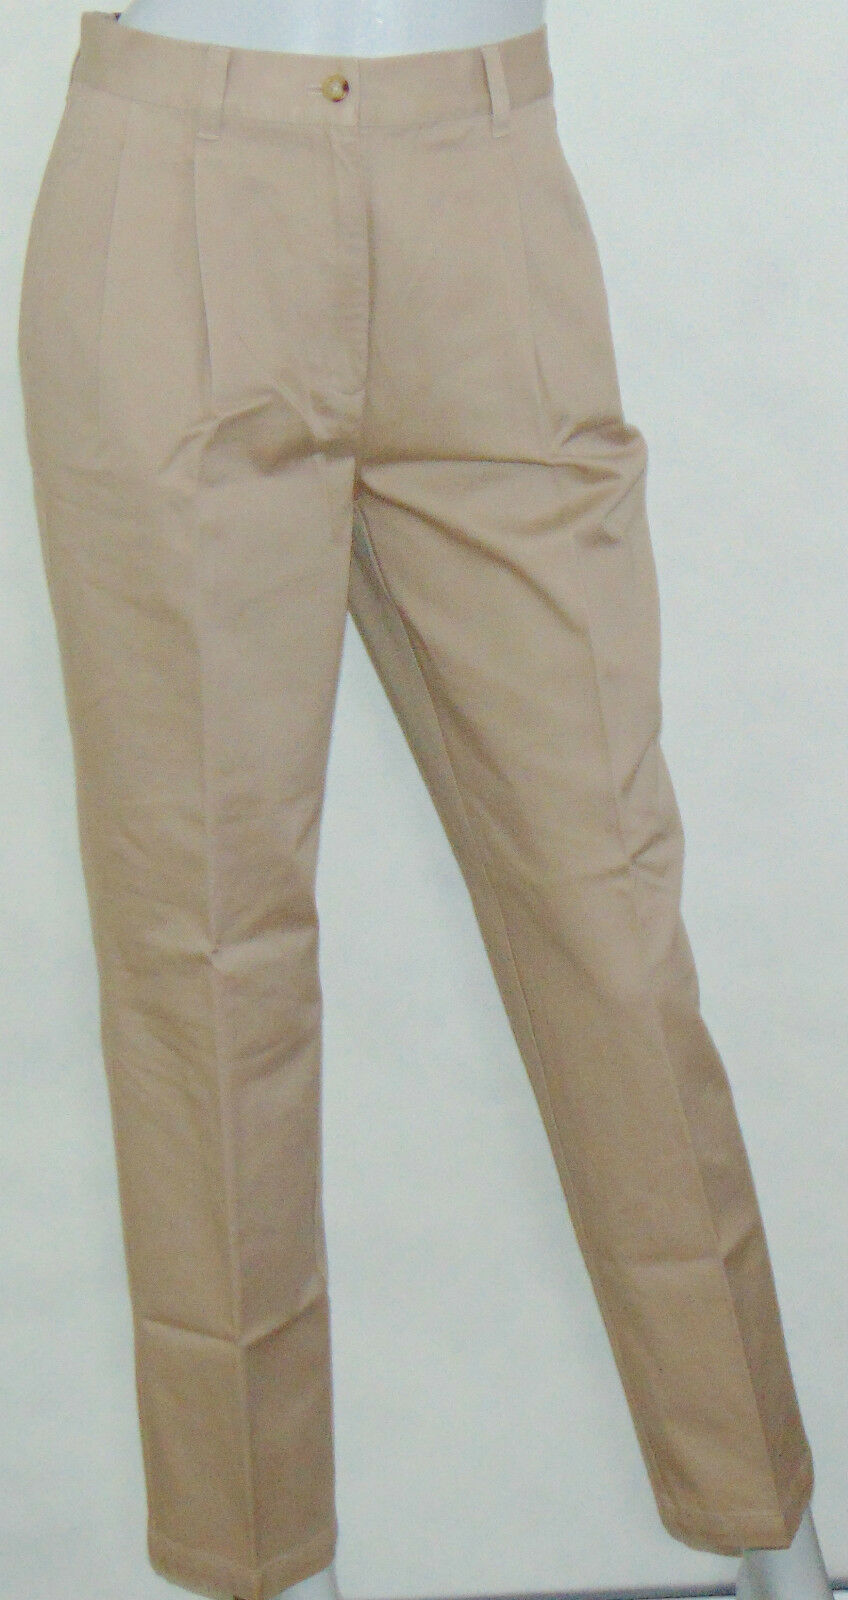 NWT Lauren Ralph Lauren Casual Pants 4P Pleat Front 100% Cotton Beige Belt Loops